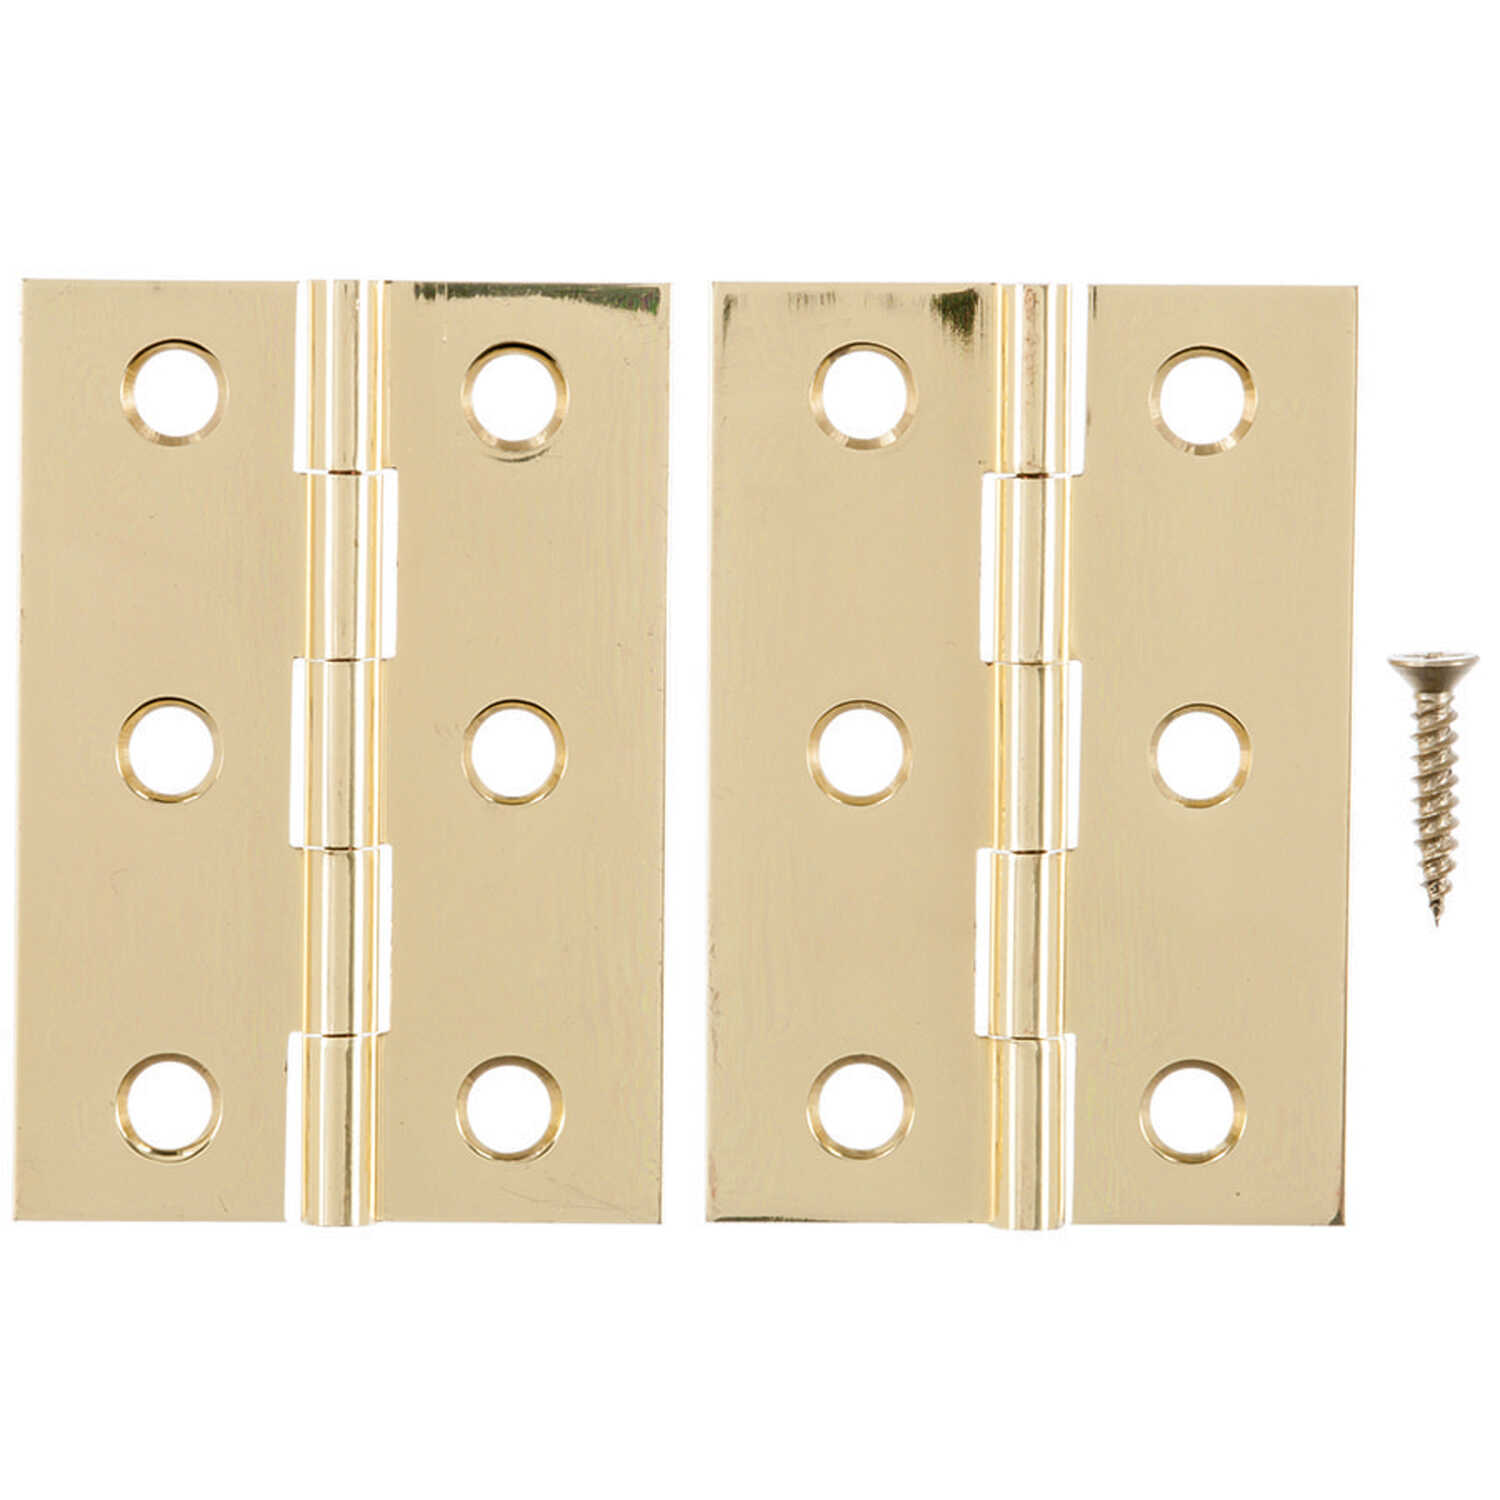 Ace  2-1/2 in. W x 1-3/4 in. L Polished Brass  Brass  Broad Hinge  2 pk